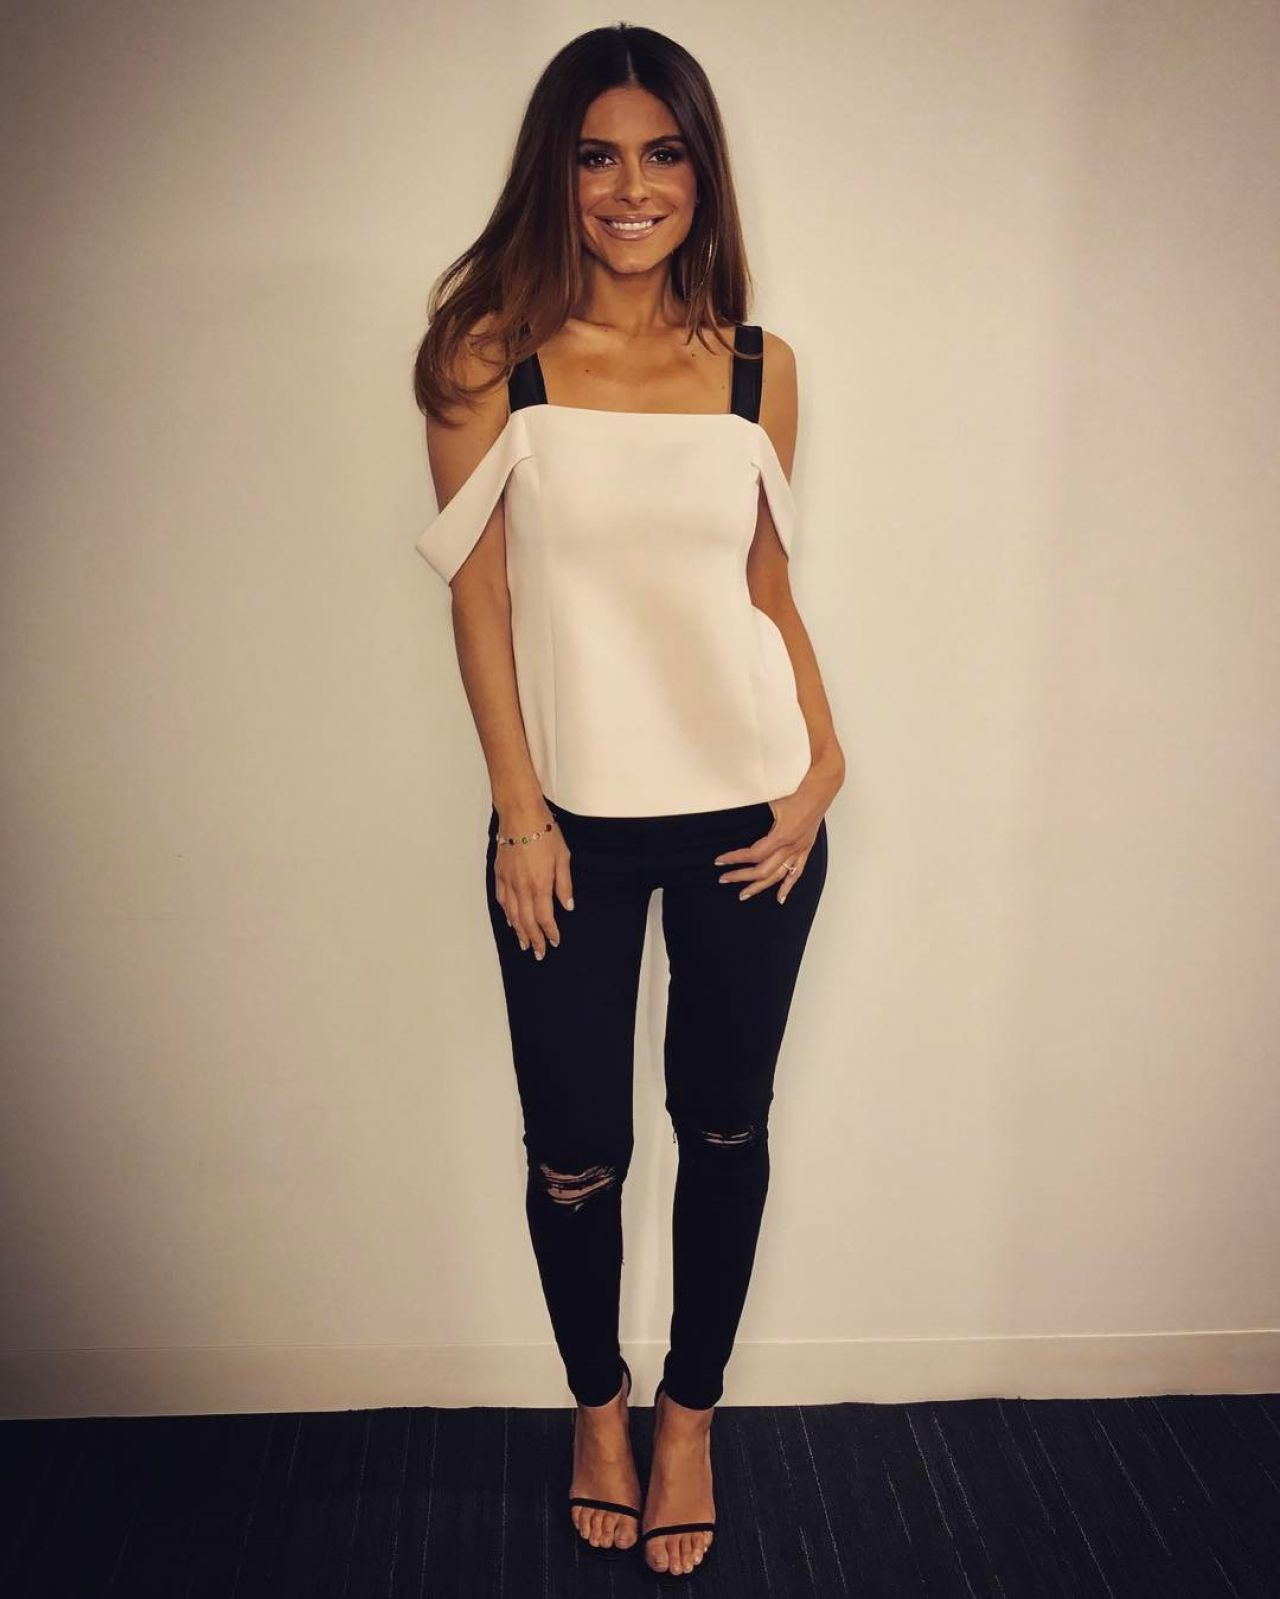 Maria Menounos Social Media Photos March 2017